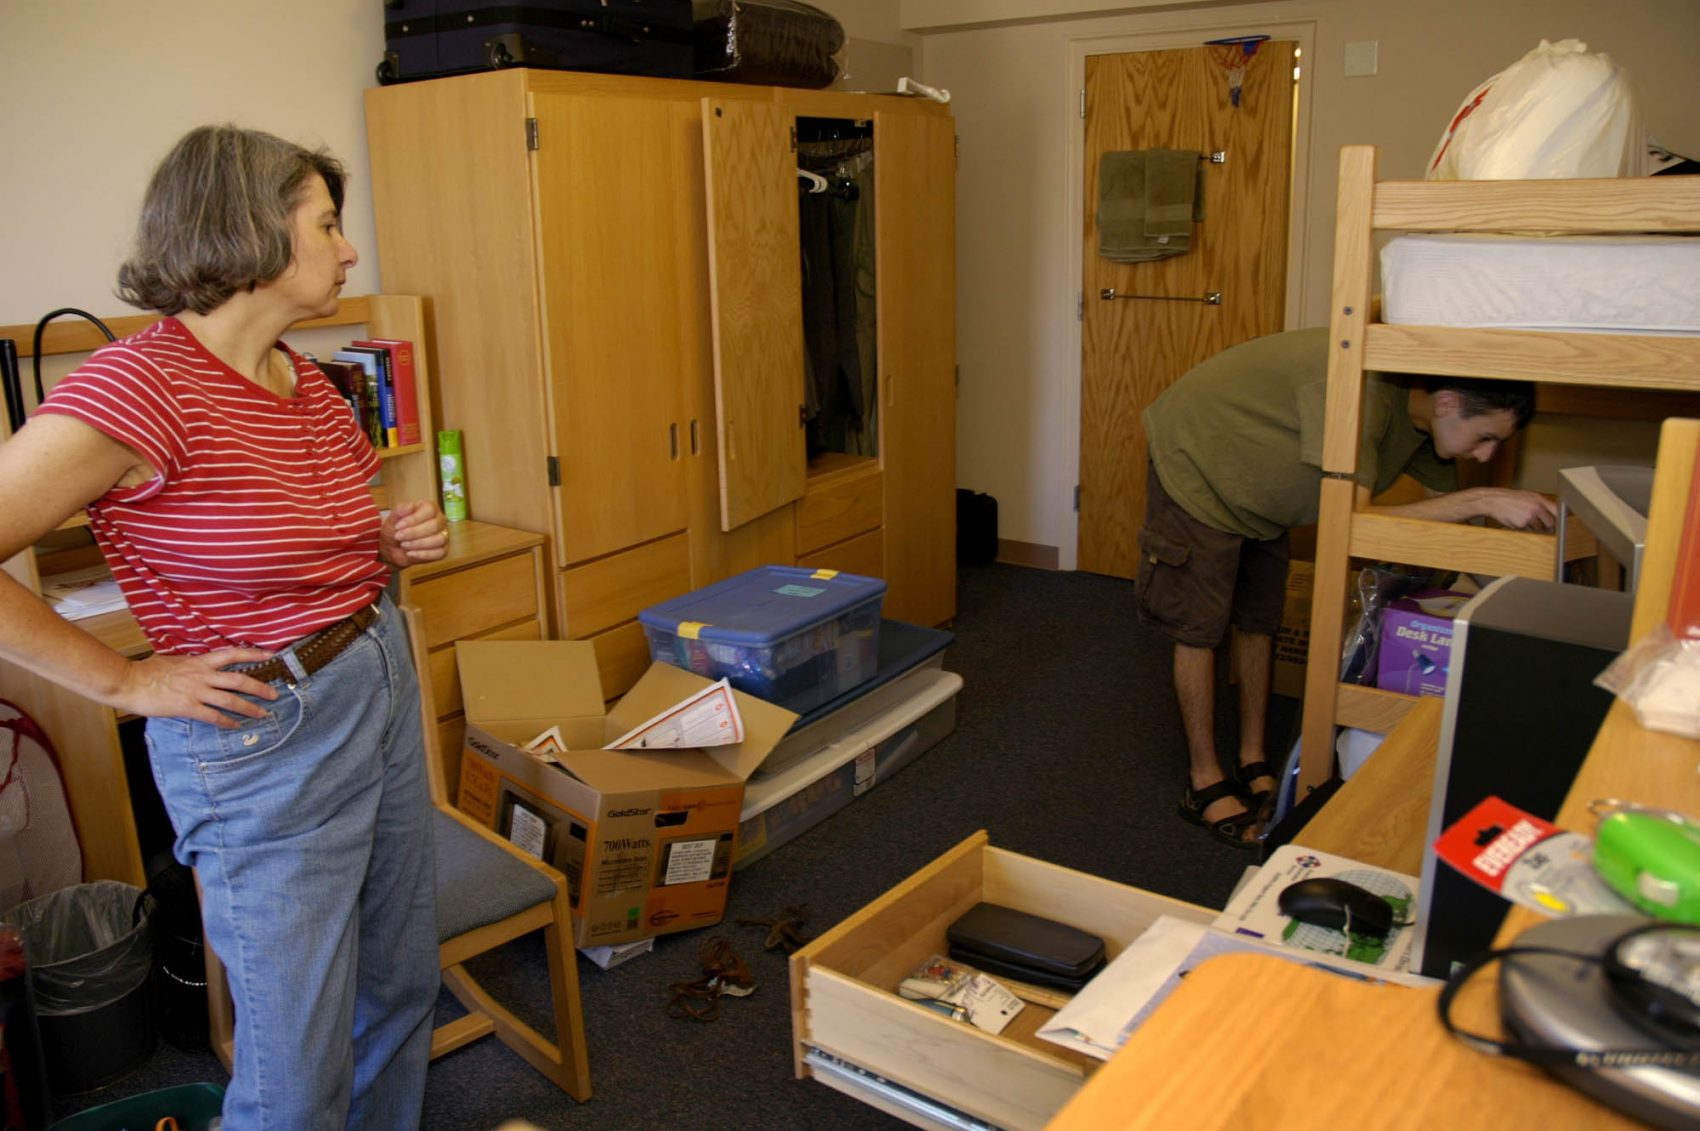 June Banker helps her son, Michael, move into his dorm room at Colgate University in Hamilton, N.Y., Thursday, Aug. 25, 2005. (Kevin Rivoli/AP)